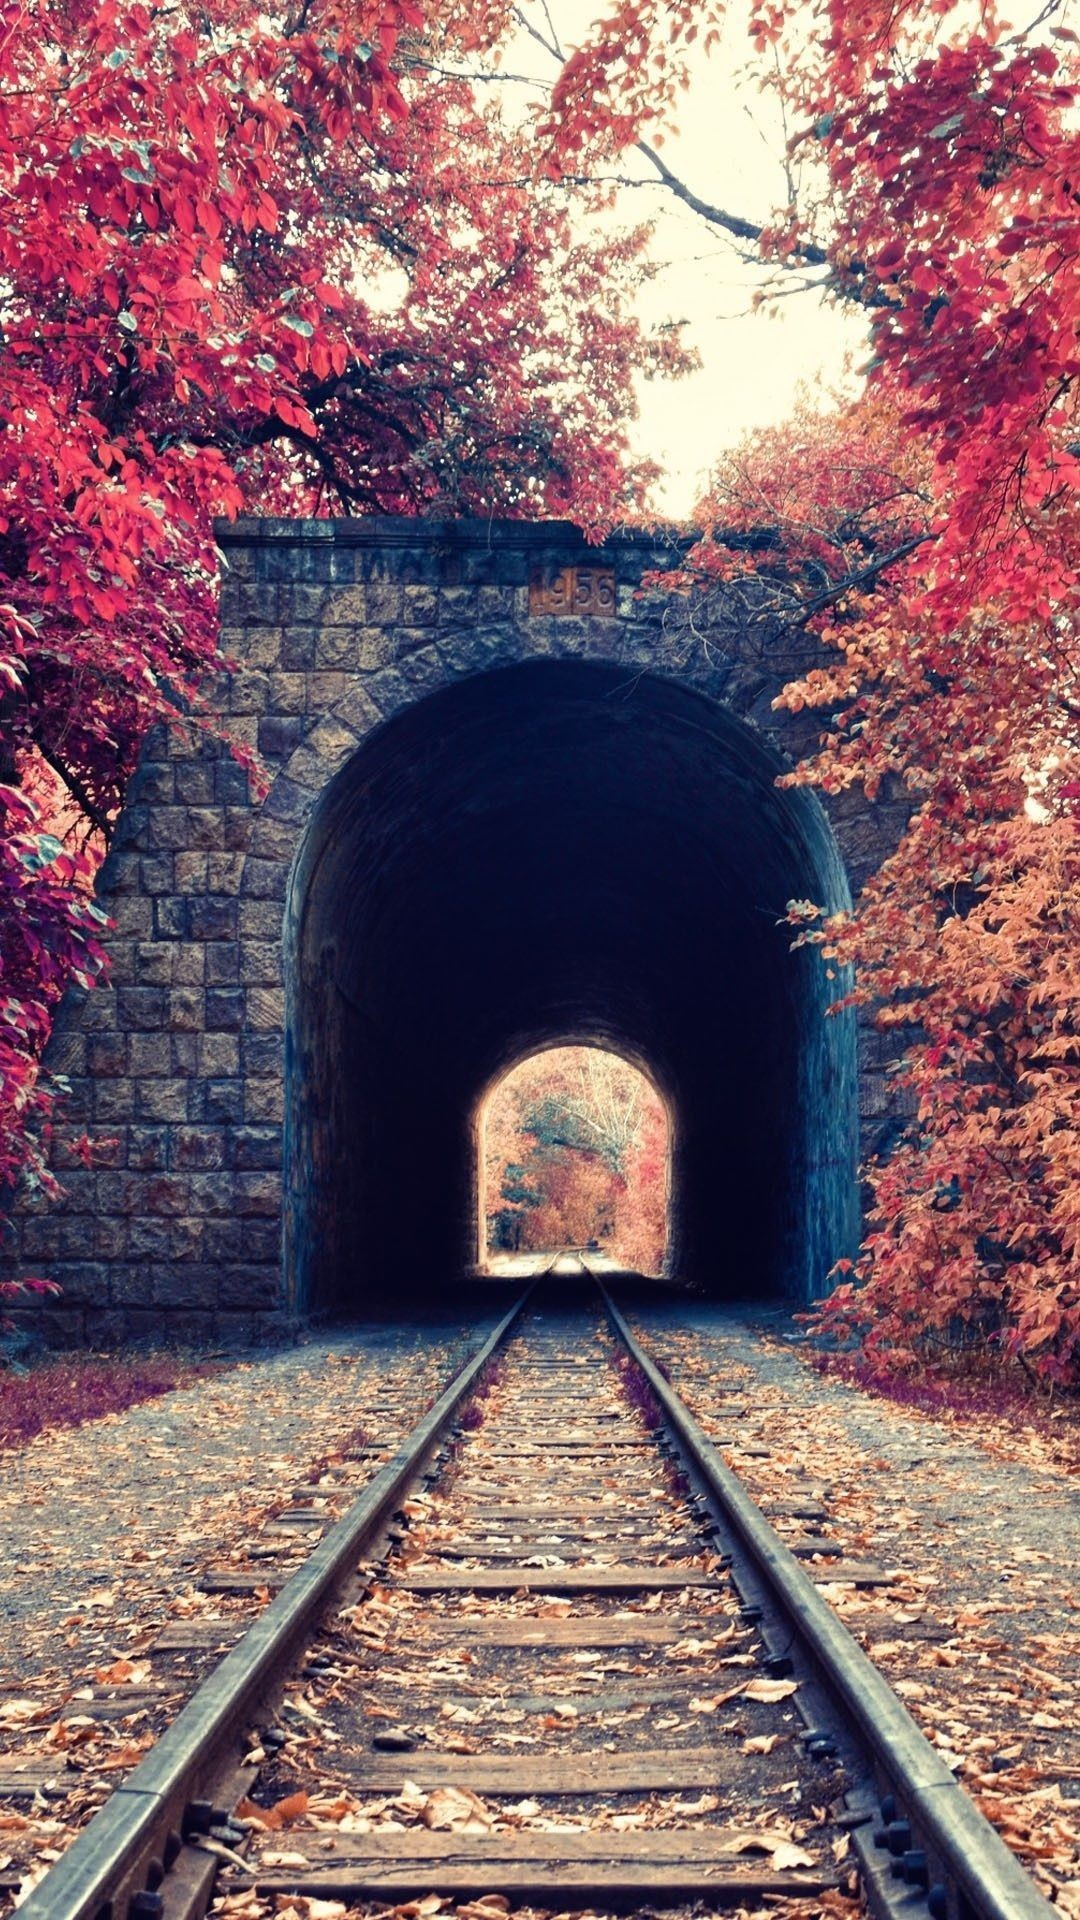 Autumn Train Tunnel Red Tree Leaves iPhone 6 Plus HD Wallpaper